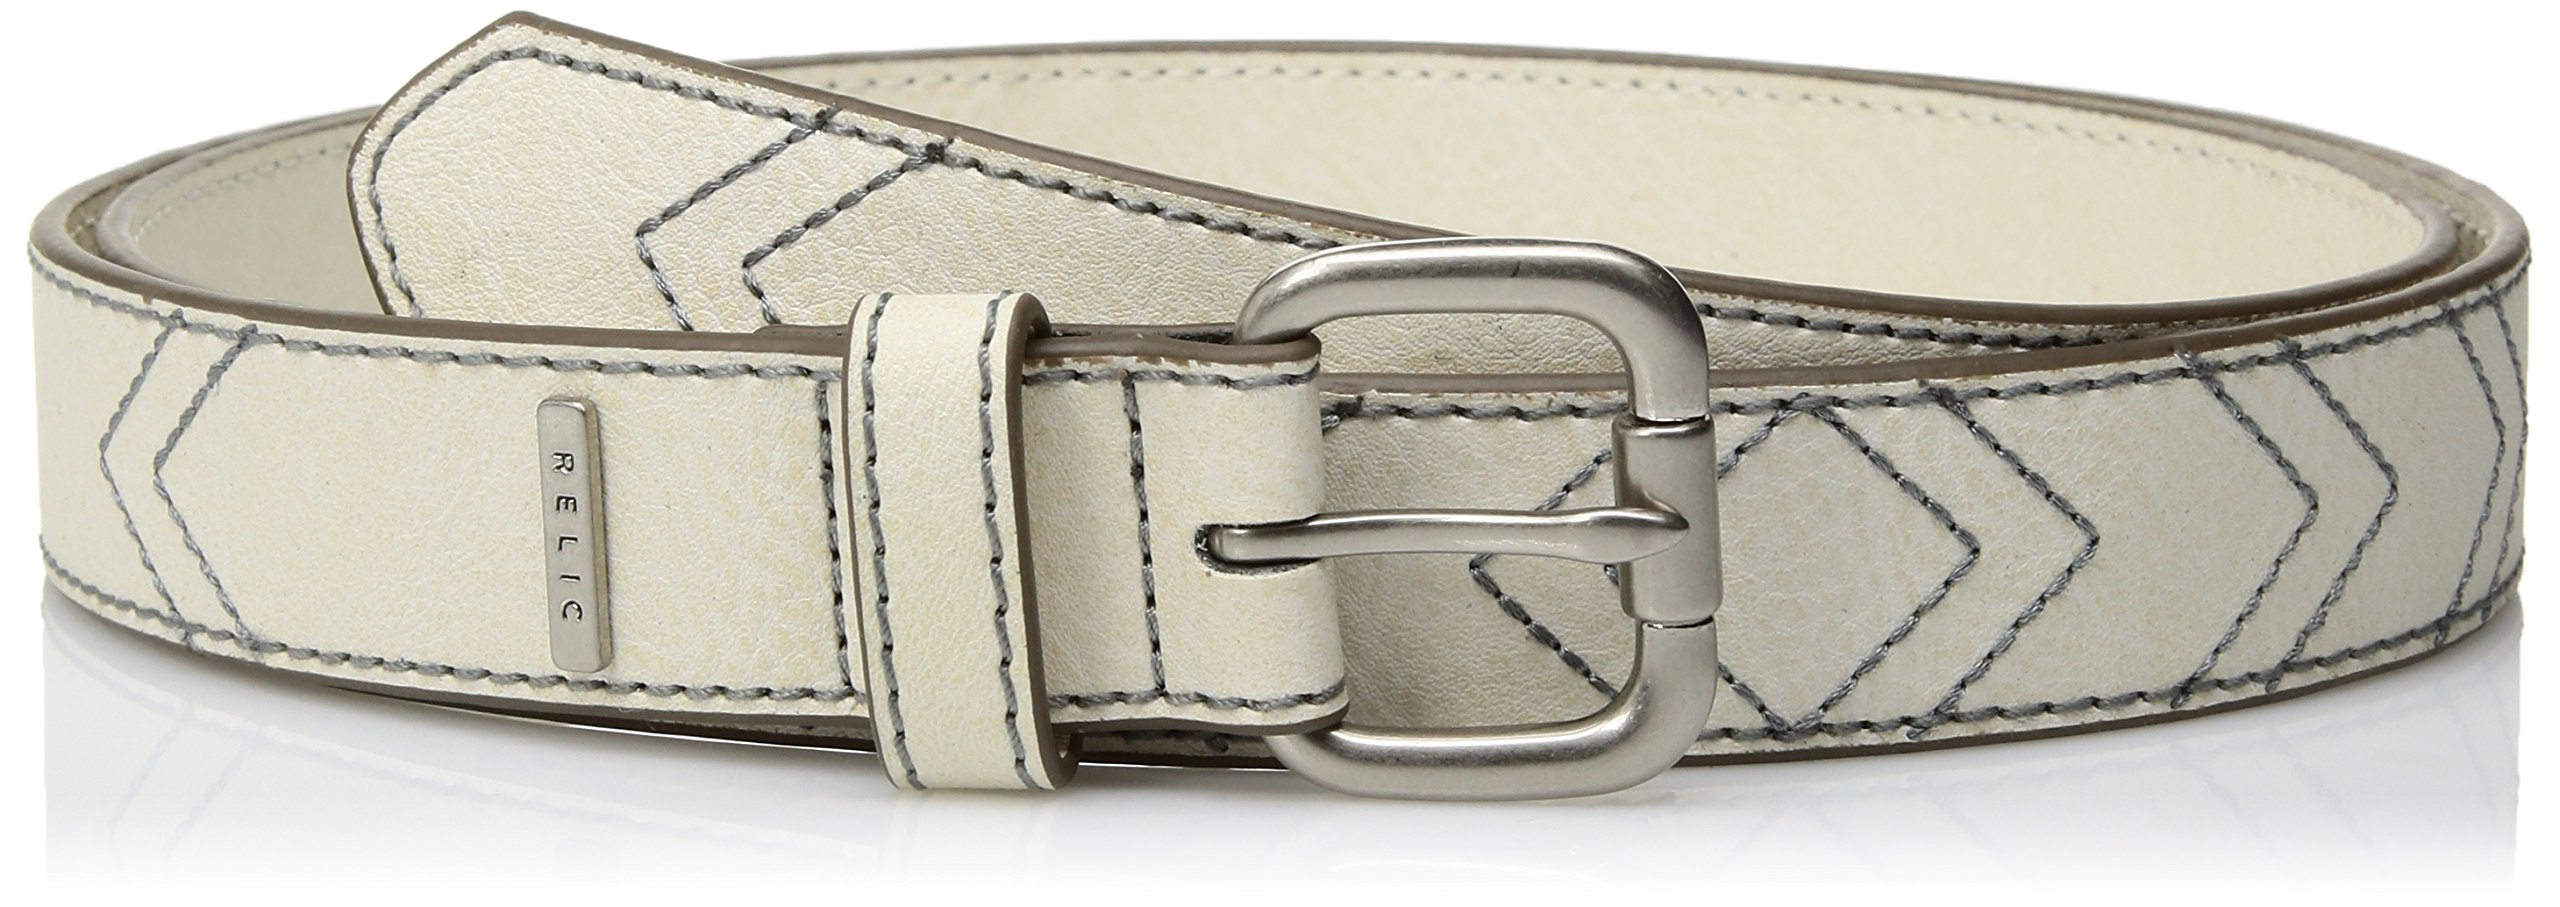 Relic Womens Chevron Stitch Belt, Cloud White, 2X